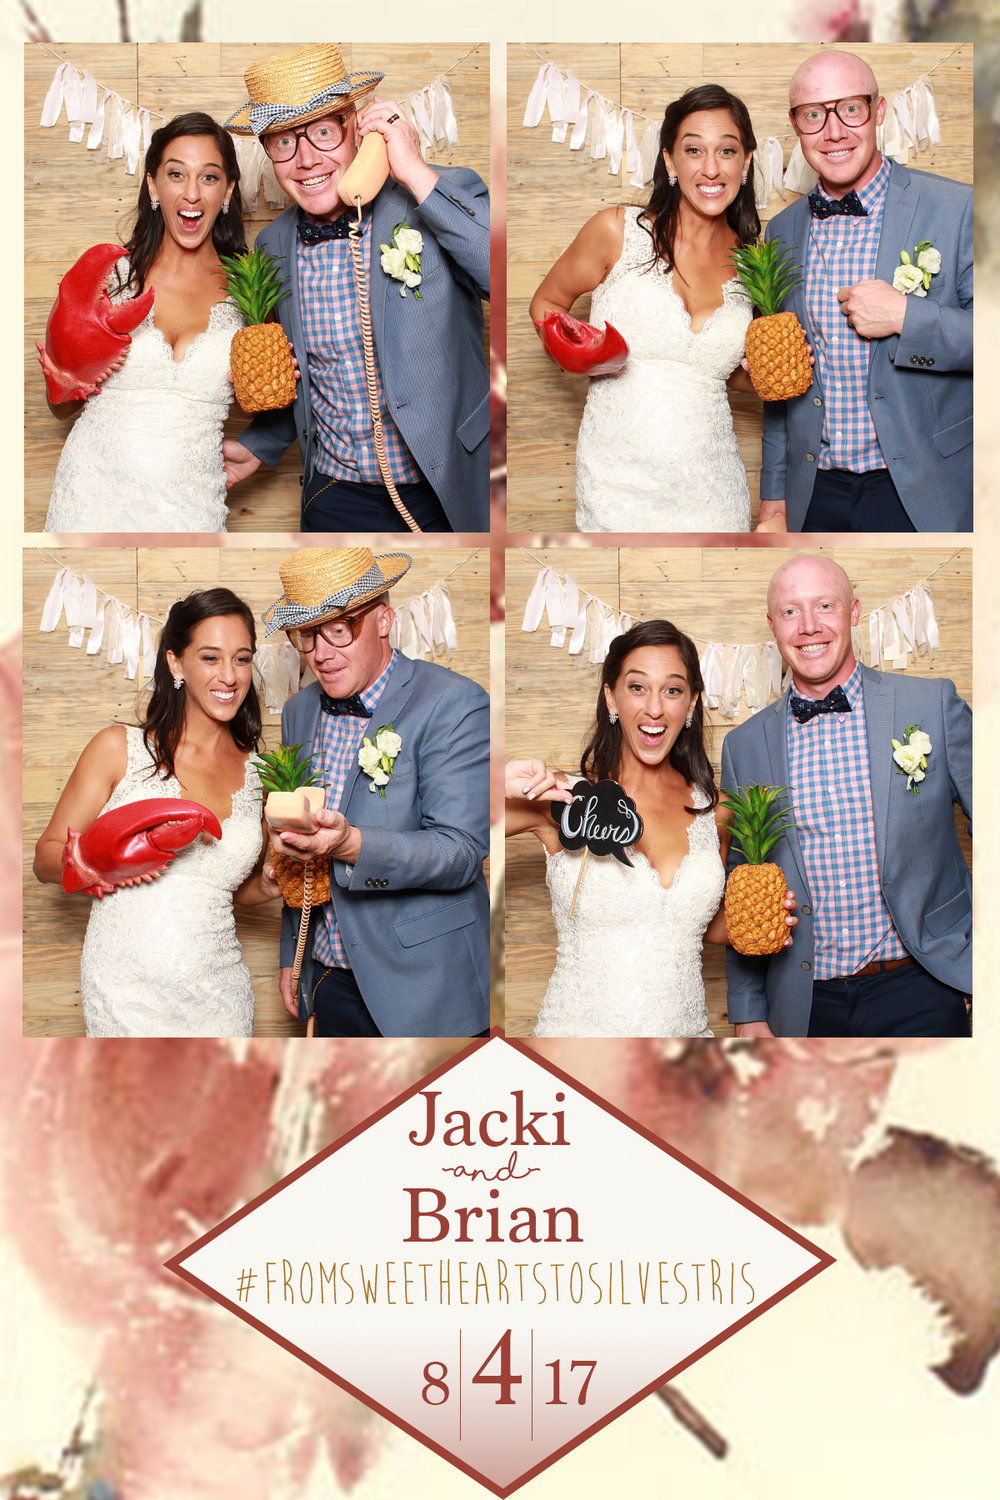 Brian and Jacki August 4th 2017